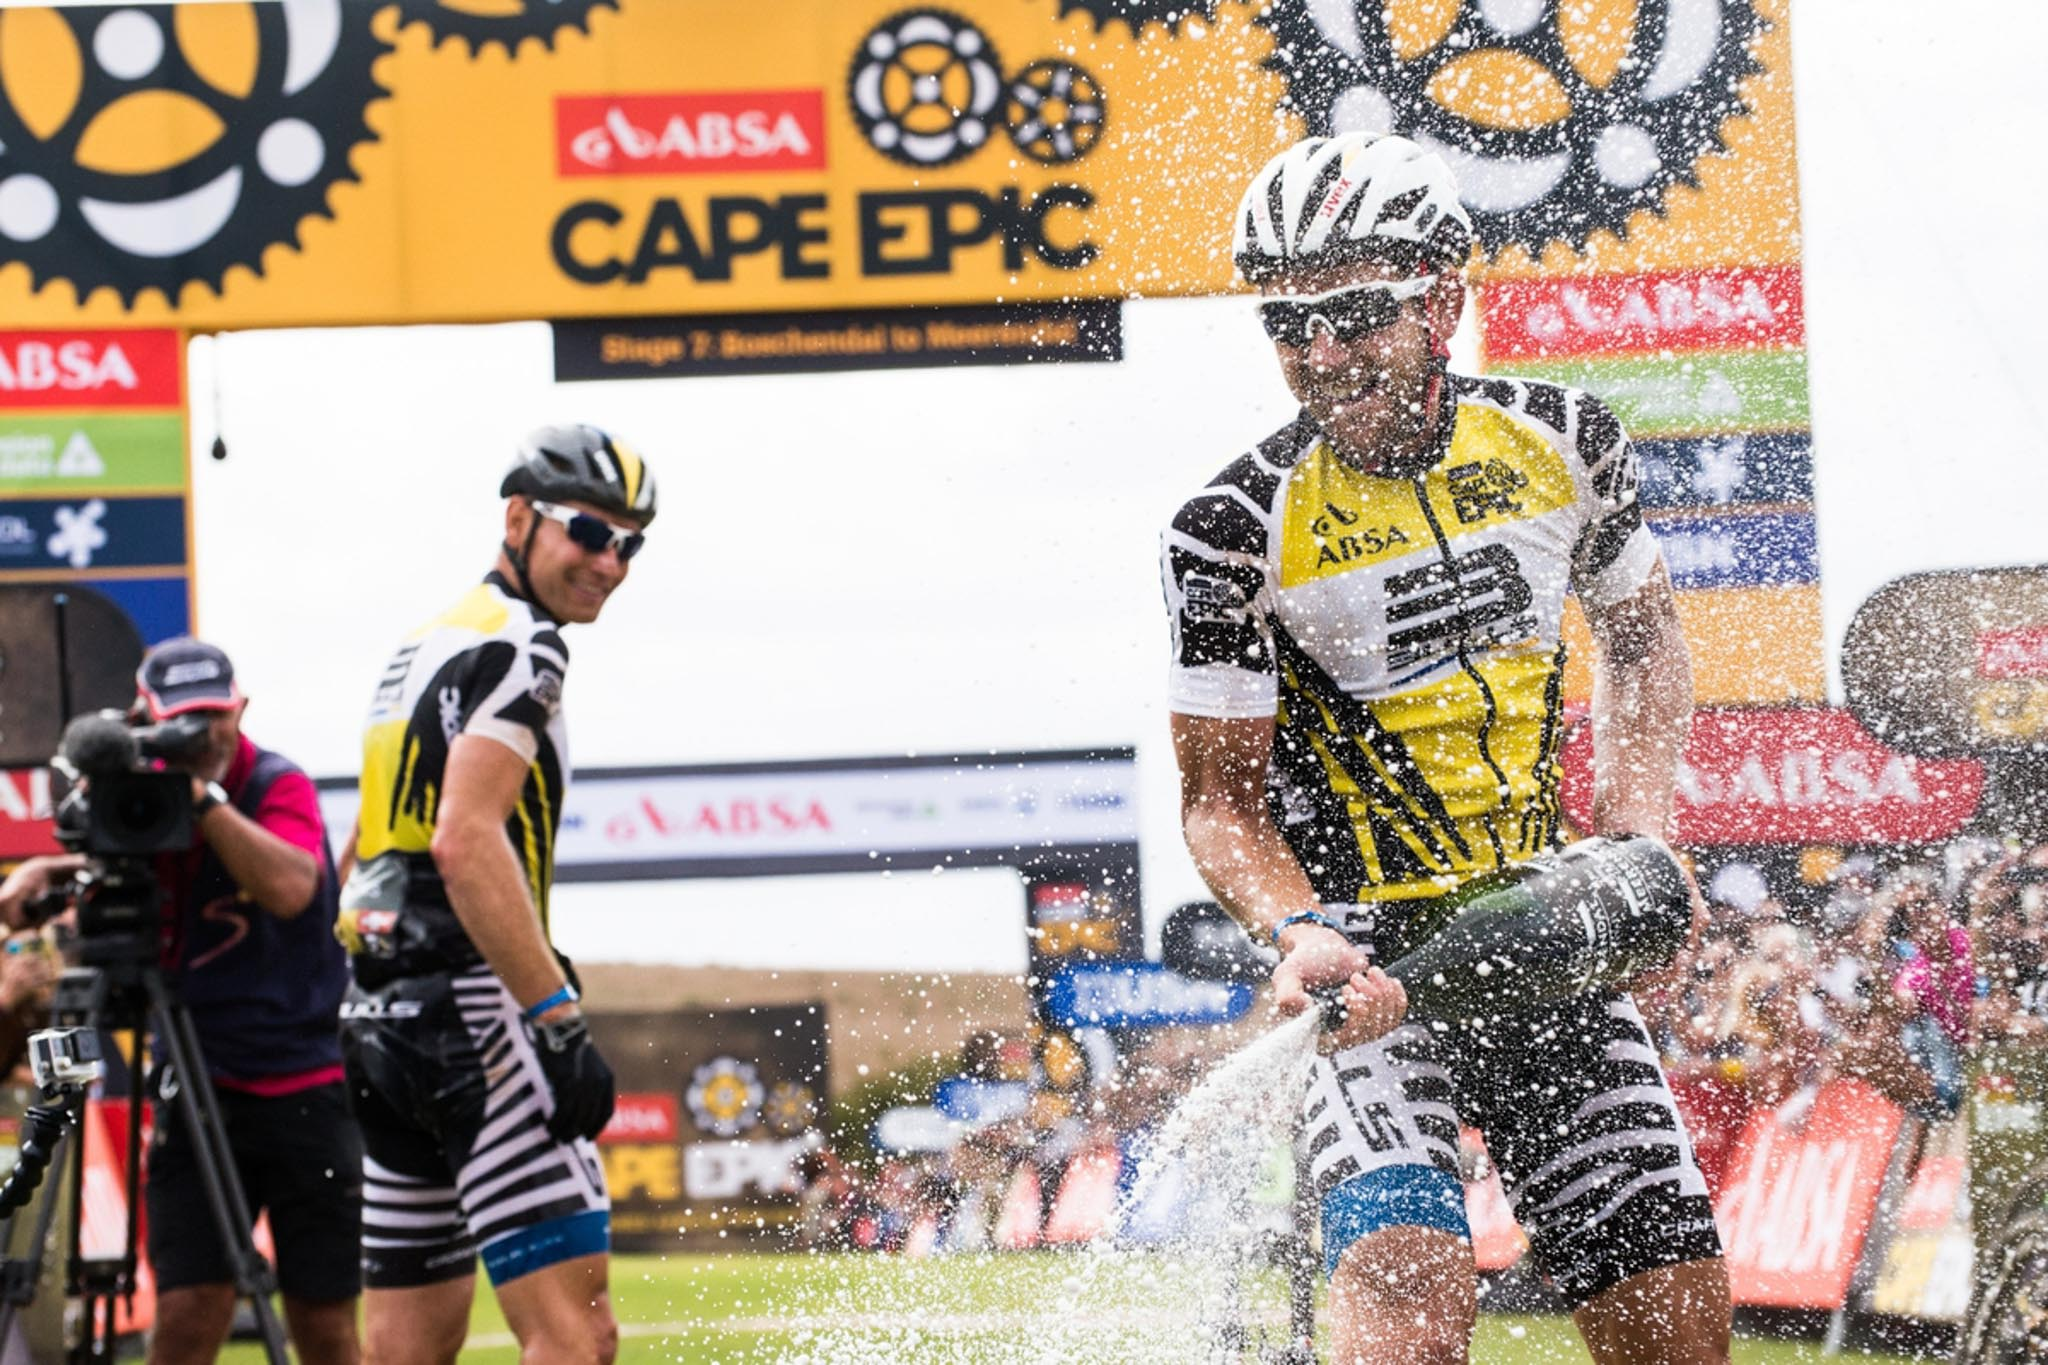 Karl Platt of Germany (Bulls) and Urs Huber of Switzerland (Bulls) celebrating their overall win of this years race as they cross the finish line, during the final stage (stage 7) of the 2016 Absa Cape Epic Mountain Bike stage race from Boschendal in Stellenbosch to Meerendal Wine Estate in Durbanville, South Africa on the 20th March 2016 Photo by Emma Hill/Cape Epic/SPORTZPICS PLEASE ENSURE THE APPROPRIATE CREDIT IS GIVEN TO THE PHOTOGRAPHER AND SPORTZPICS ALONG WITH THE ABSA CAPE EPIC ace2016